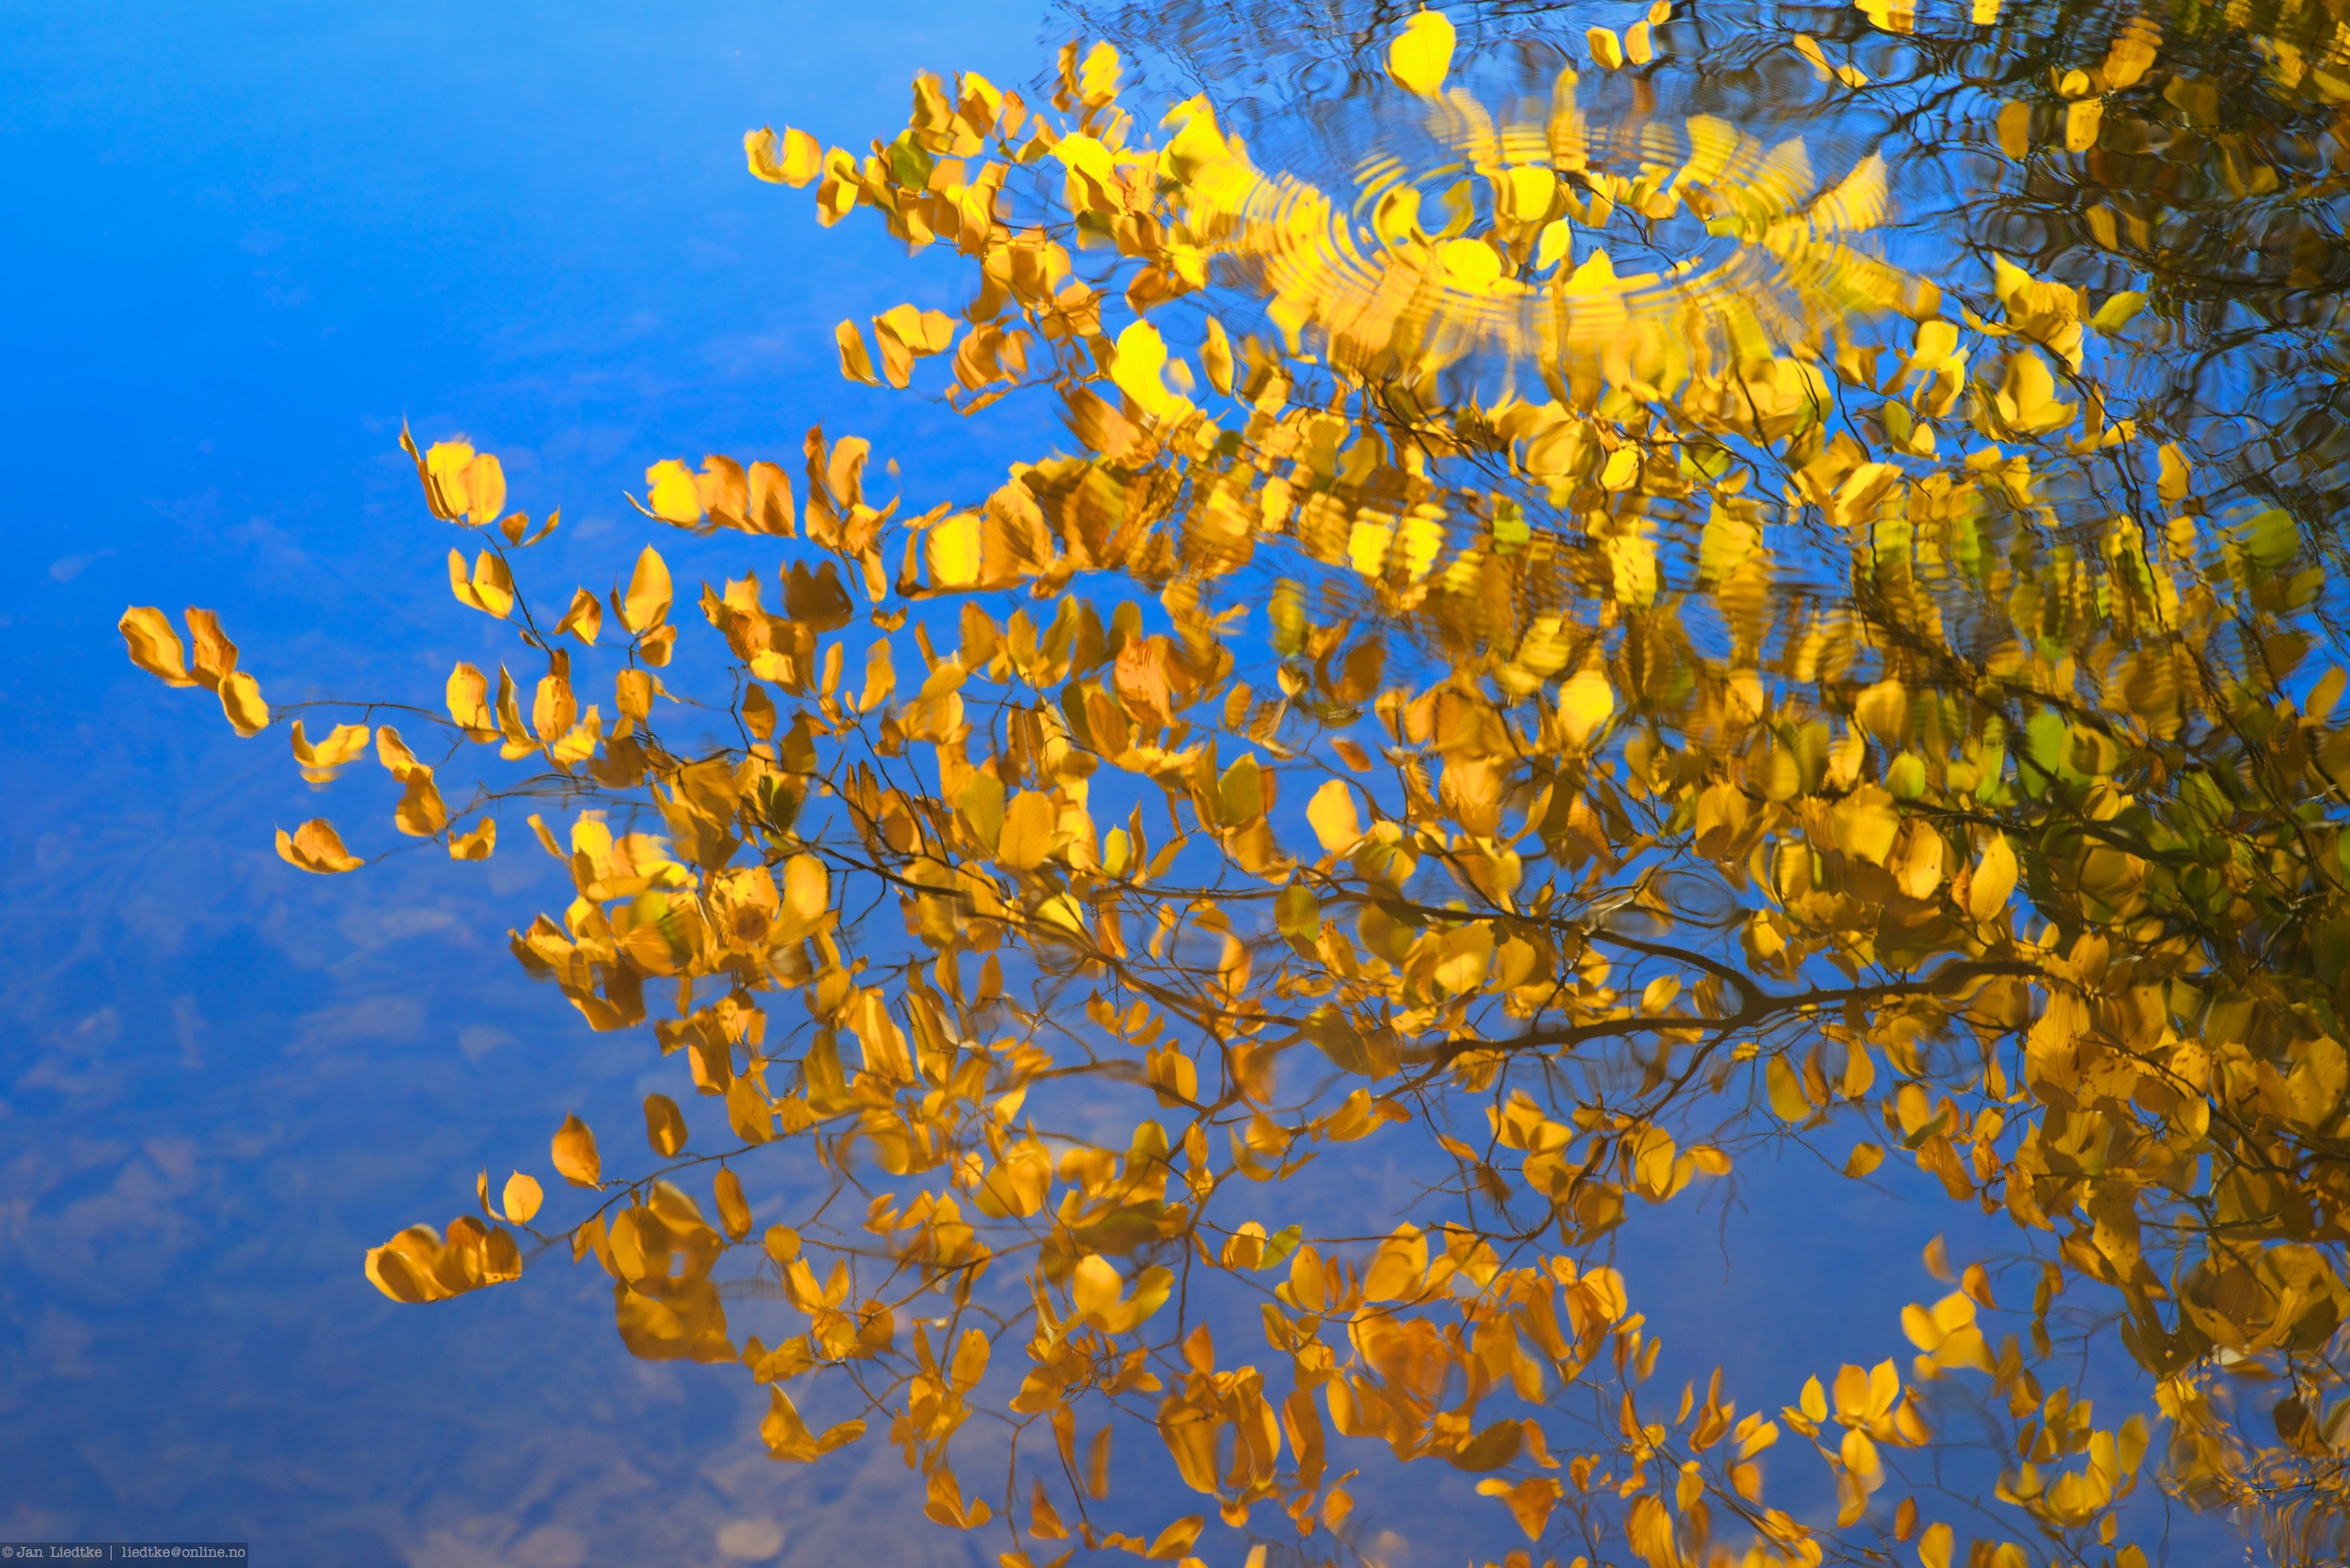 It is the branch with leaves mirrored on the water...